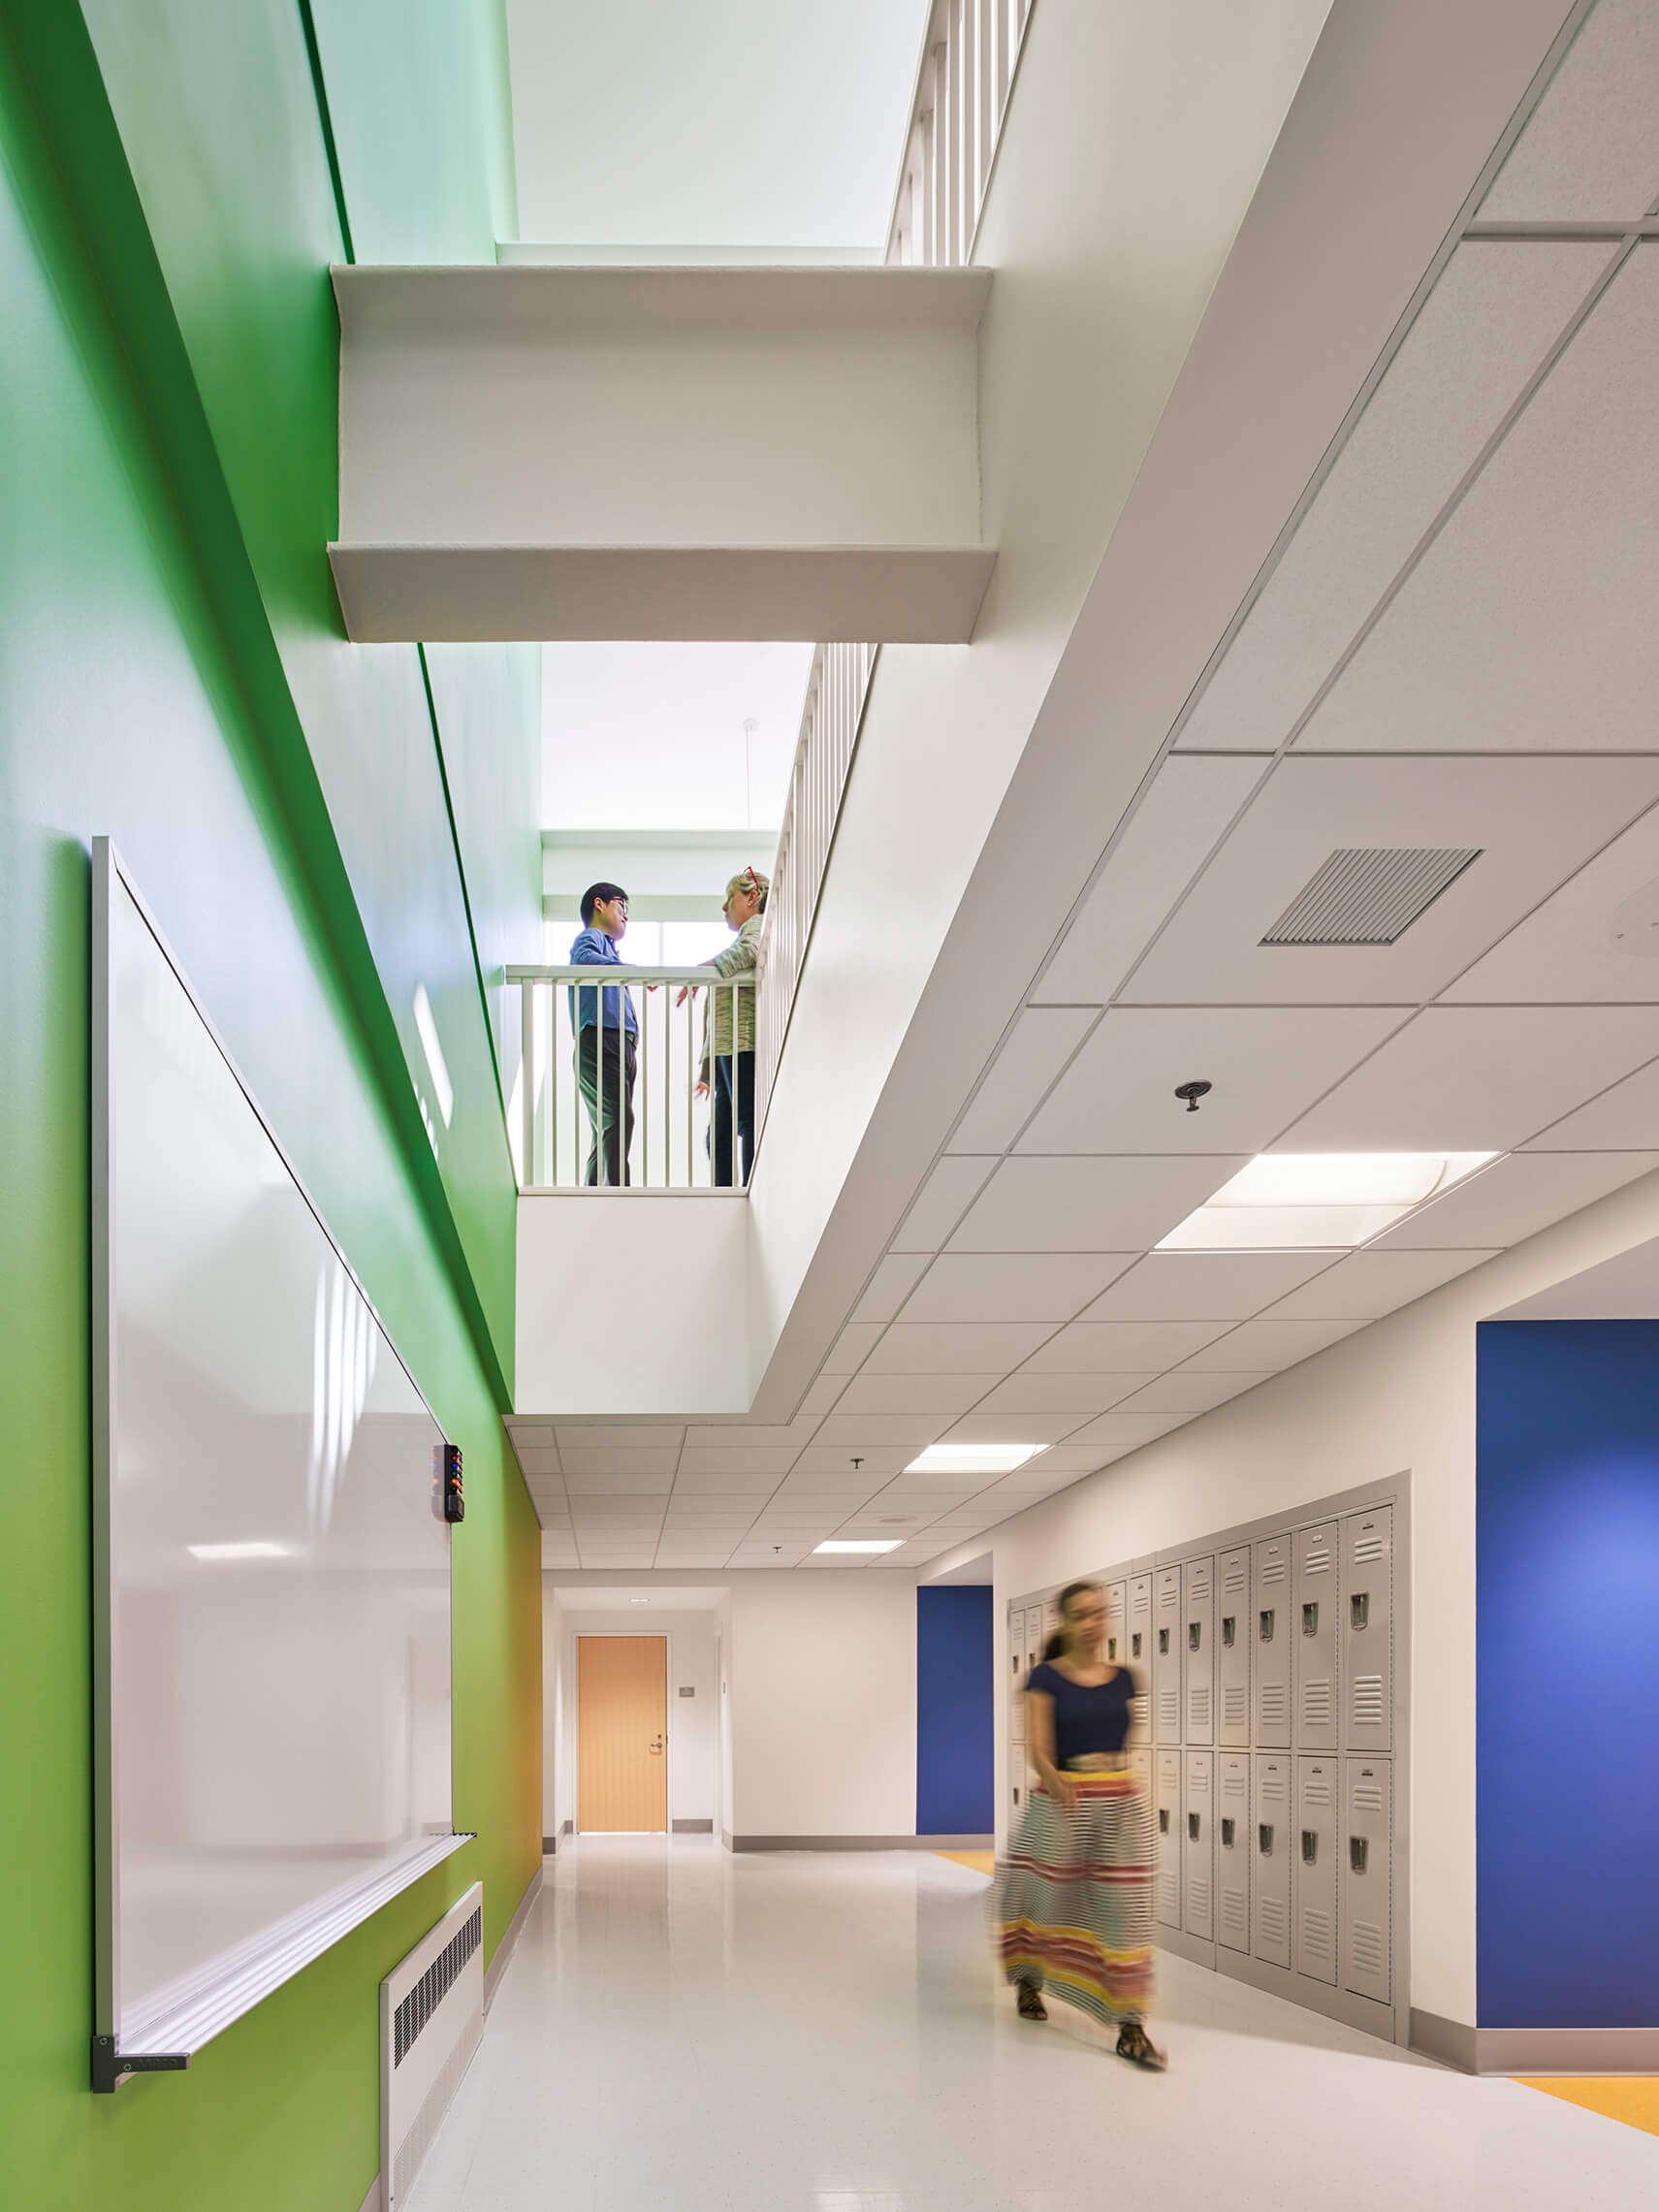 Woman walking down green and blue hallway with lockers, a whiteboard, and people talking on the second floor.